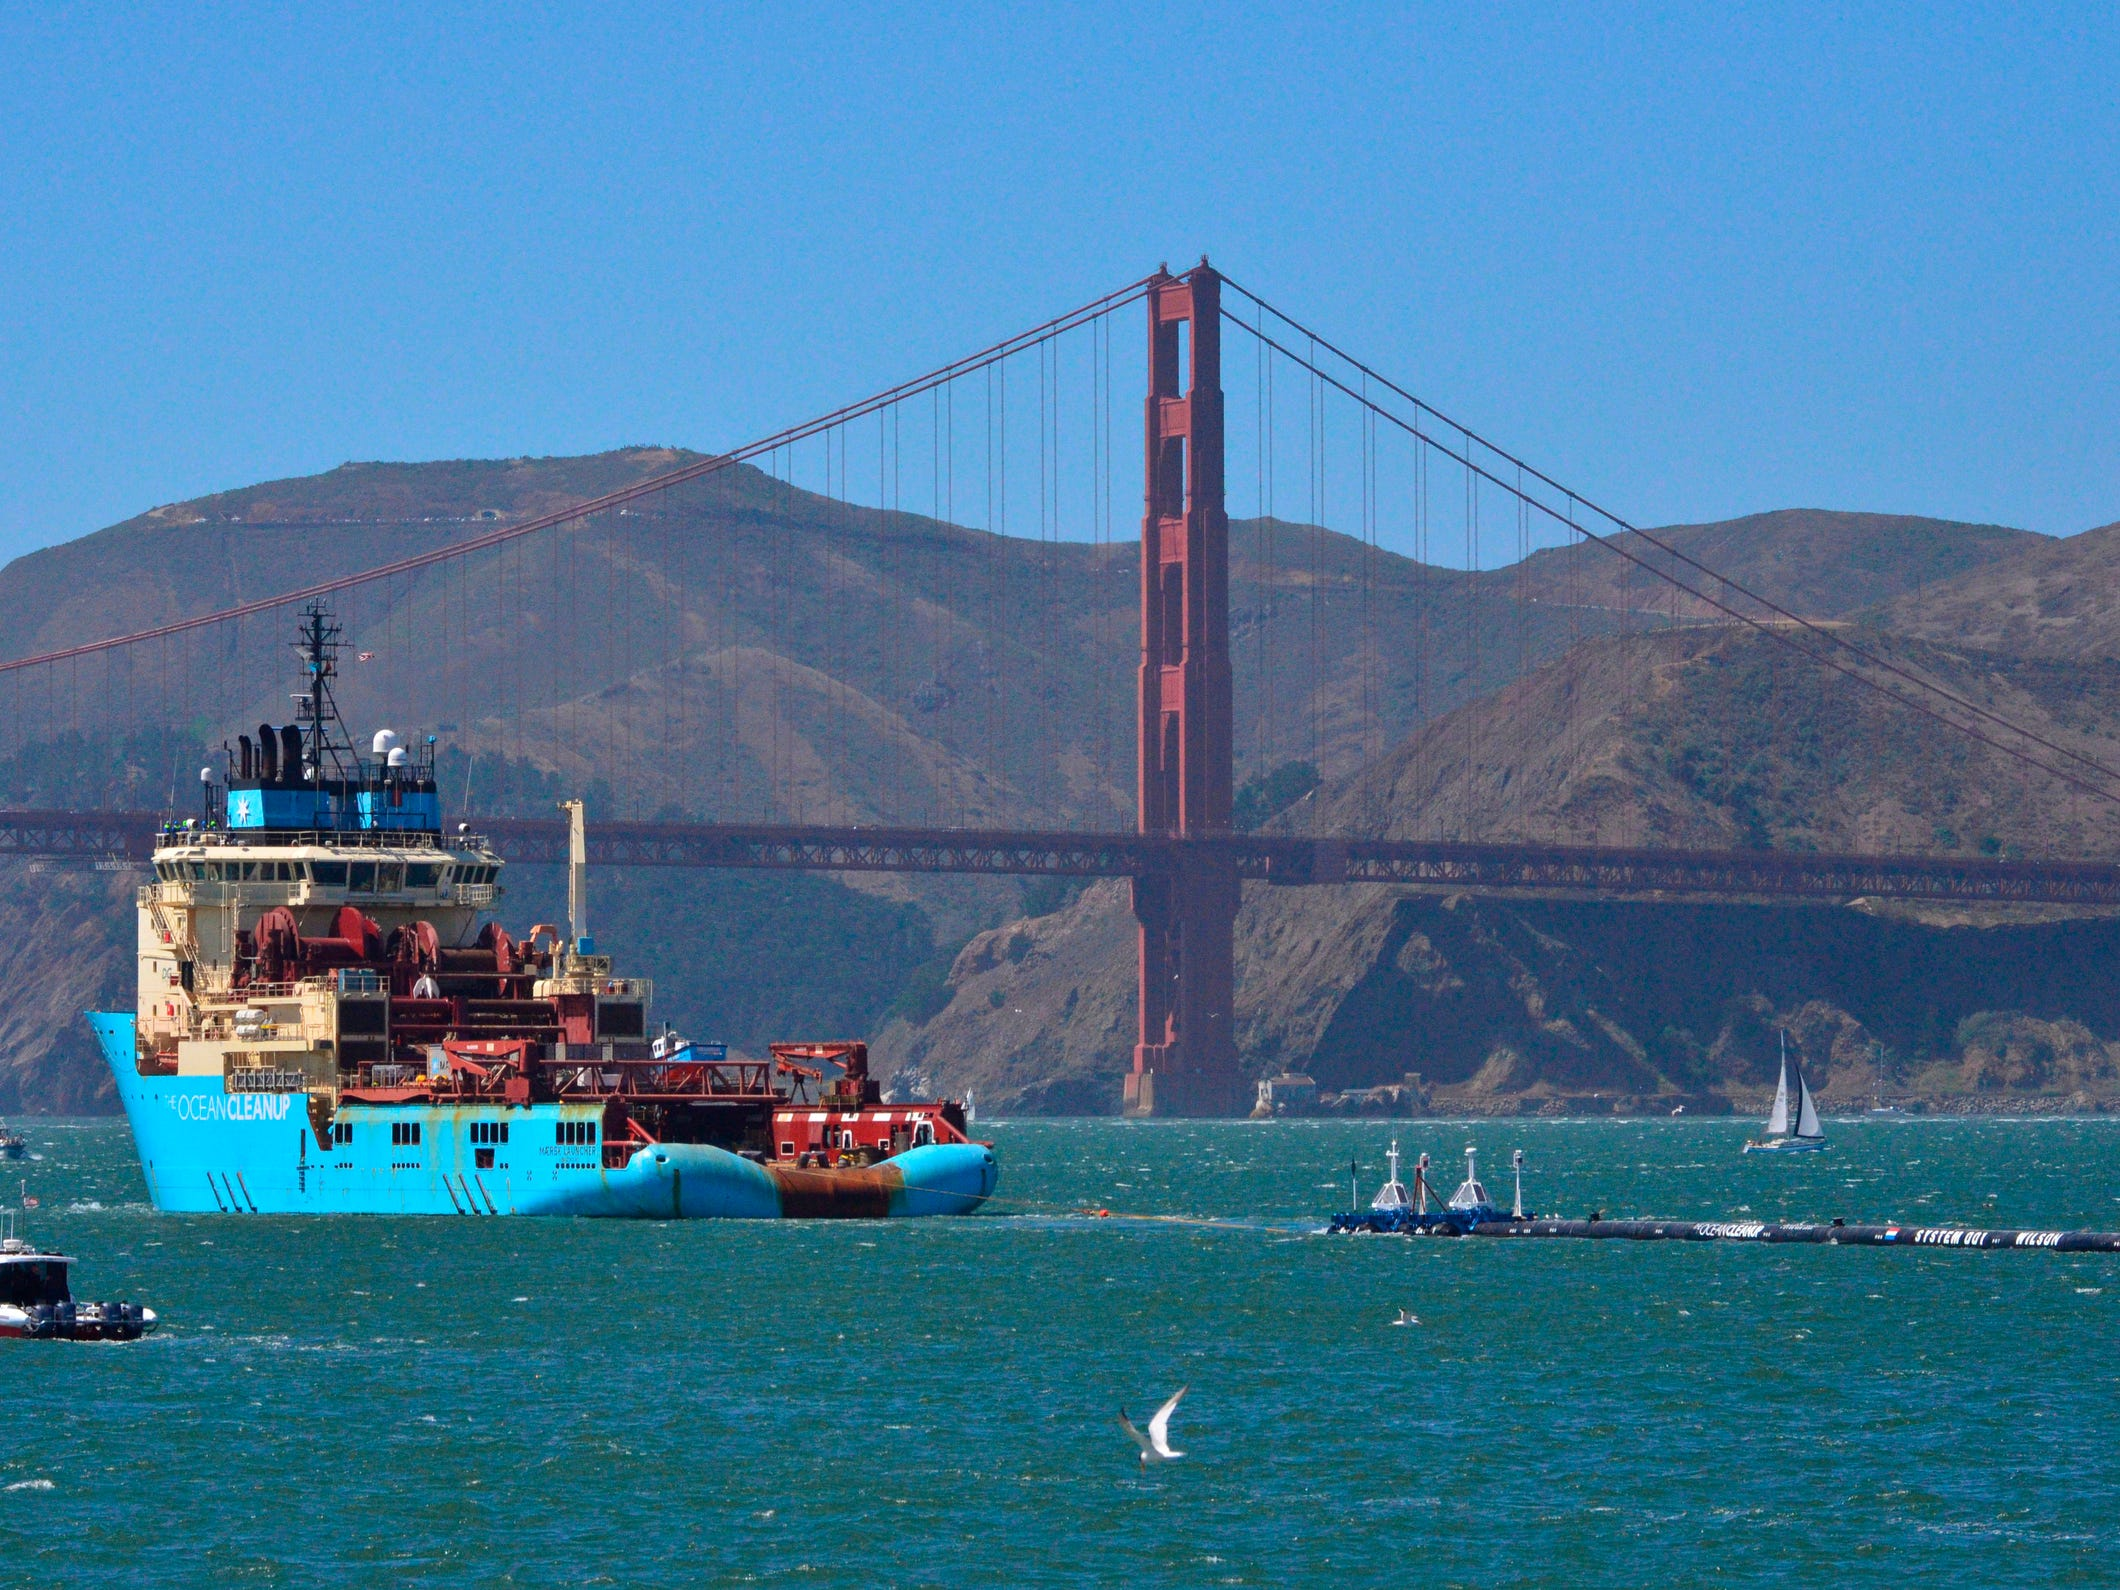 A ship tows The Ocean Cleanup's first buoyant trash-collecting device toward the Golden Gate Bridge in San Francisco en route to the Pacific Ocean in September 2018. Out in the Pacific, however, the boom broke apart under constant wind and waves. The break was discovered on Dec. 29, and the device was being towed back for repairs and overhaul. Boyan Slat, who launched the Pacific Ocean cleanup project, said he was disappointed, but not discouraged.